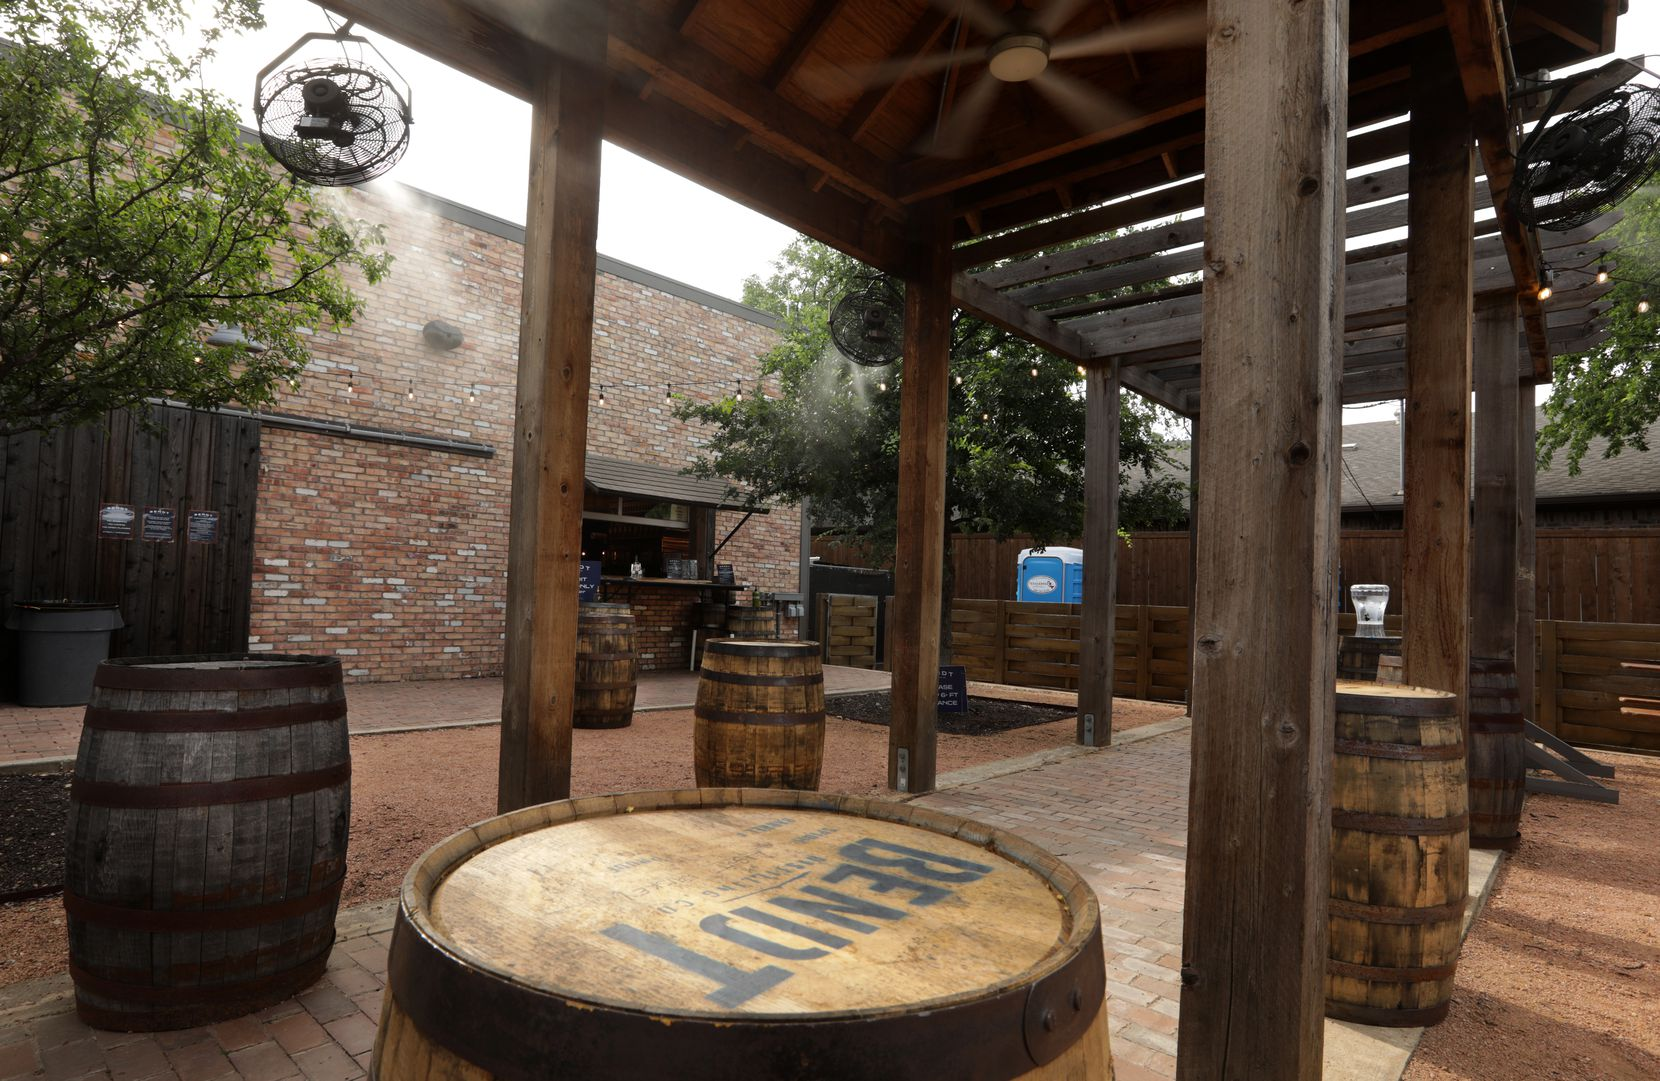 Bendt Distilling in Lewisville only recently opened back up its outdoor whiskey garden. It disrupted its regular business for almost three months.